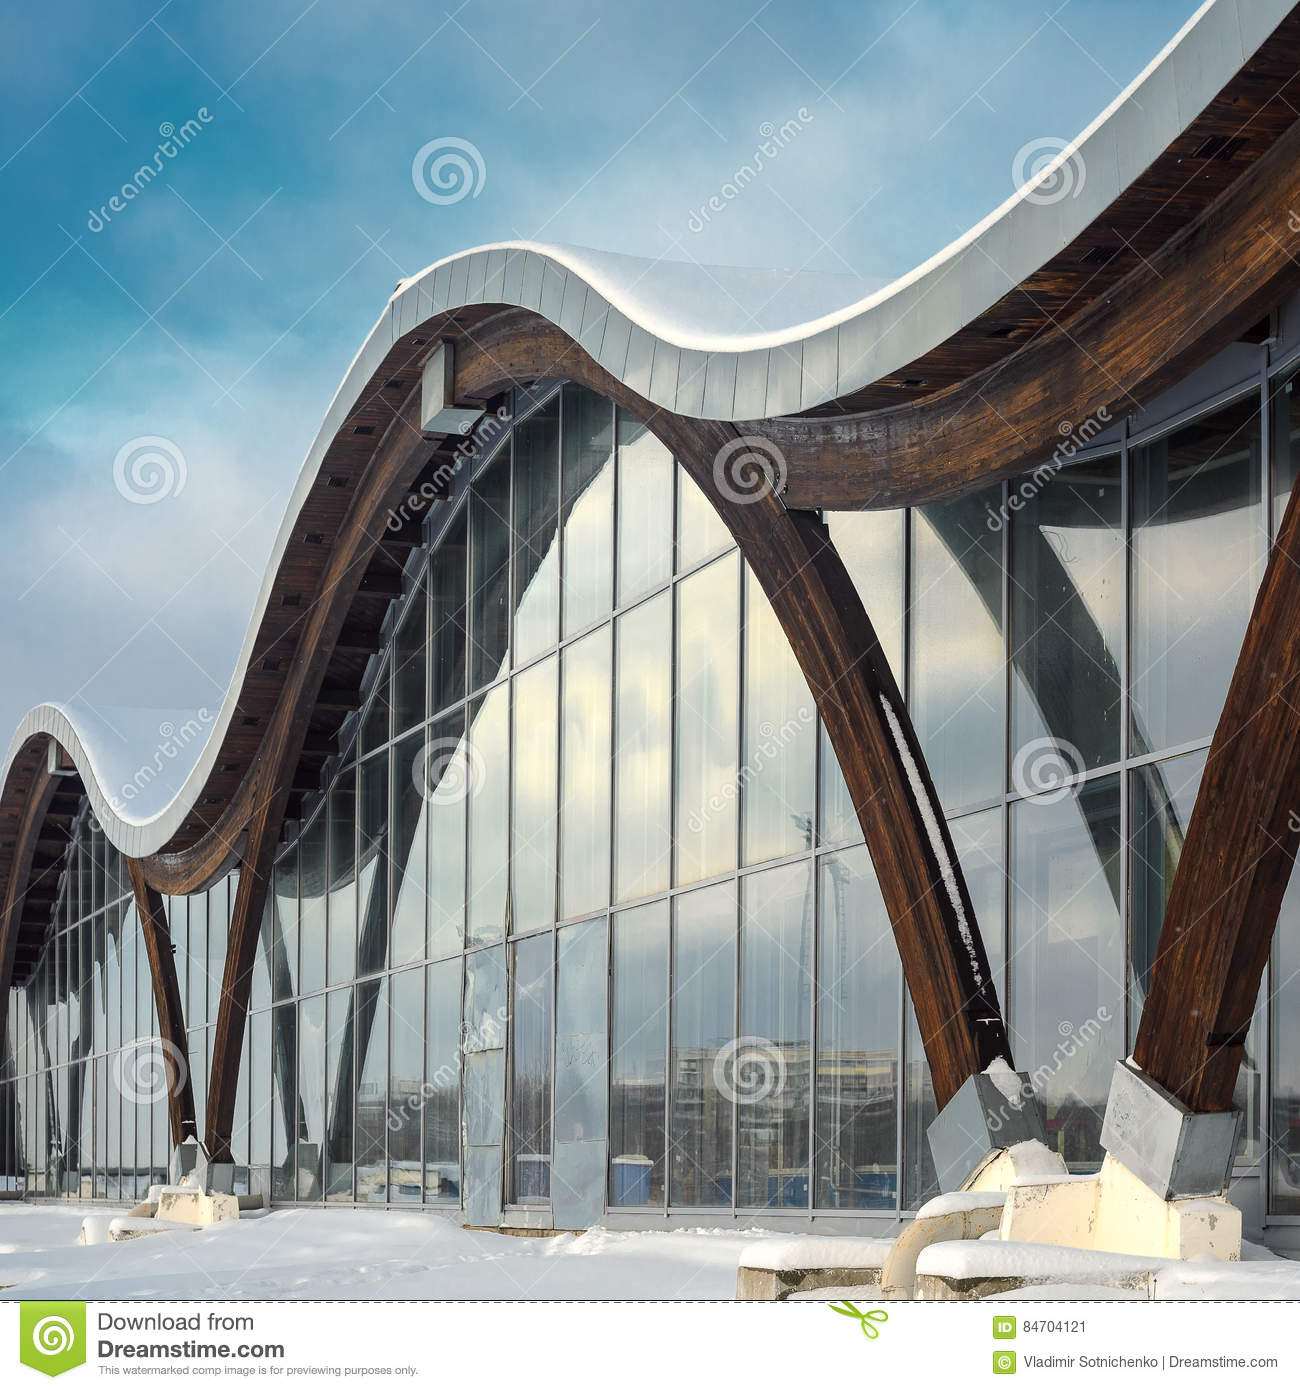 Fragment Of Modern Building With Structural Glass Wall Stock Image Image Of Circular Column 84704121